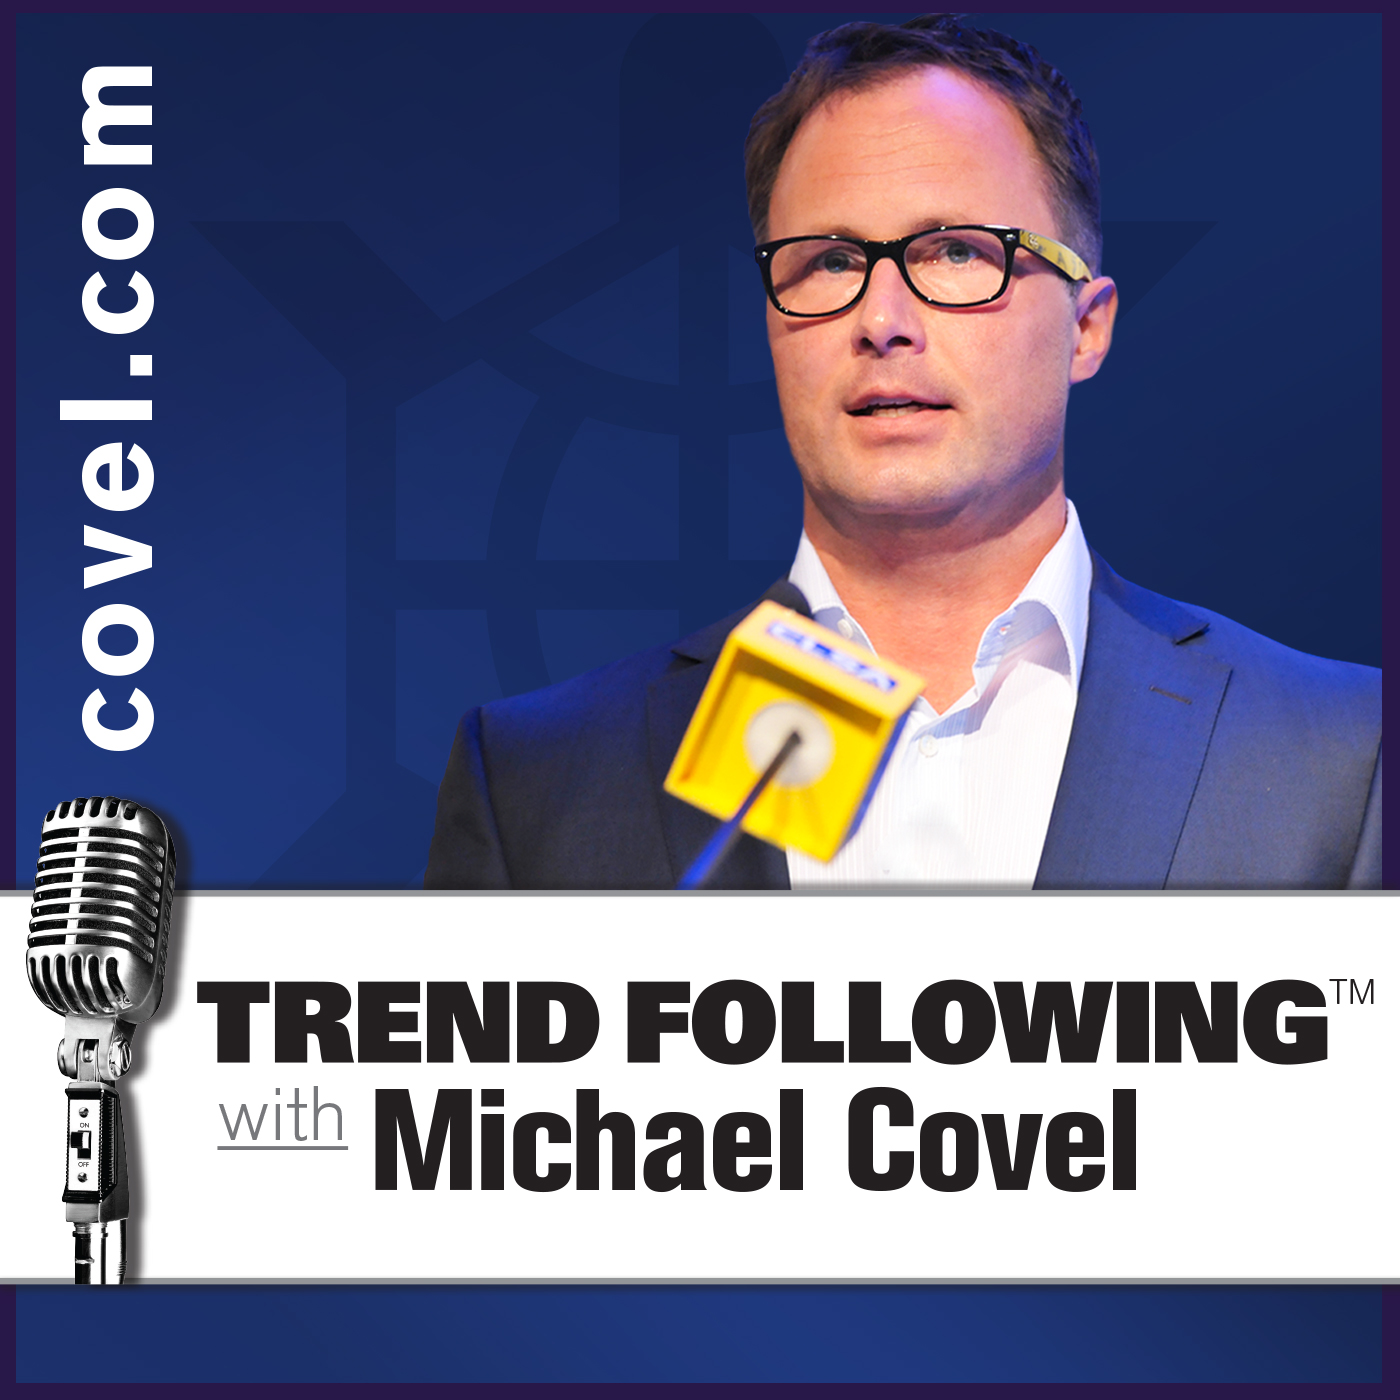 Ep. 509: Van Tharp Interview #3 with Michael Covel on Trend Following Radio